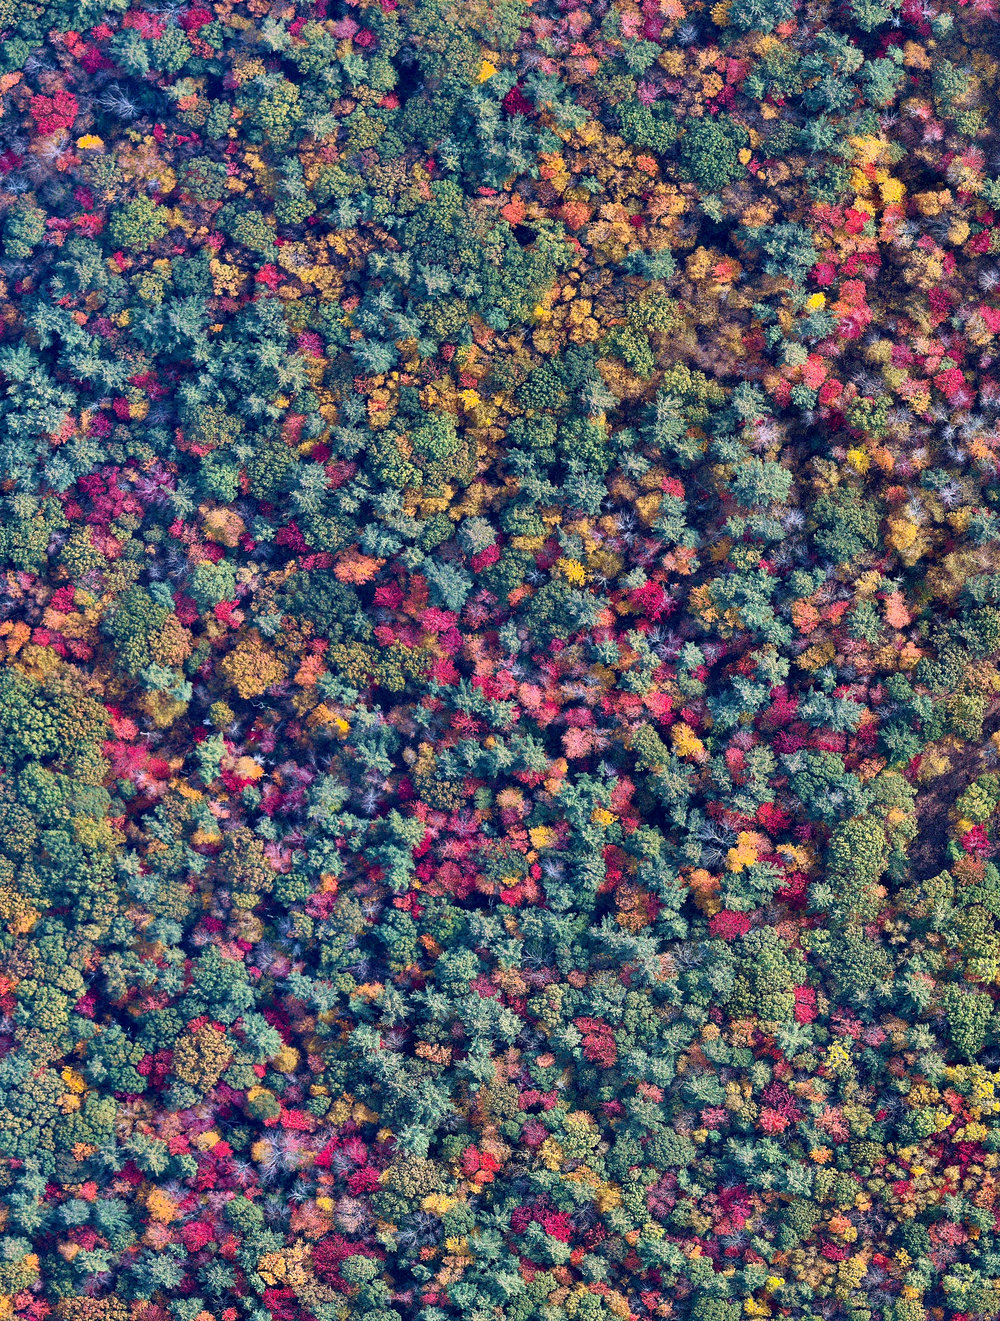 "Check out this stunning shot that we just added to our Printshop of fall foliage in New Hampshire! Head over to our  Printshop  today to see what's available and use the discount code ""FALL20"" for 20% off any order this month. This Overview captures an incredible blanket of tones in the trees of Bow, New Hampshire. With the arrival of colder temperatures, leaves begin to change their colors, creating this marvelous view from above.  43°07'39.5""N, 71°32'36.5""W  Source imagery: Nearmap"